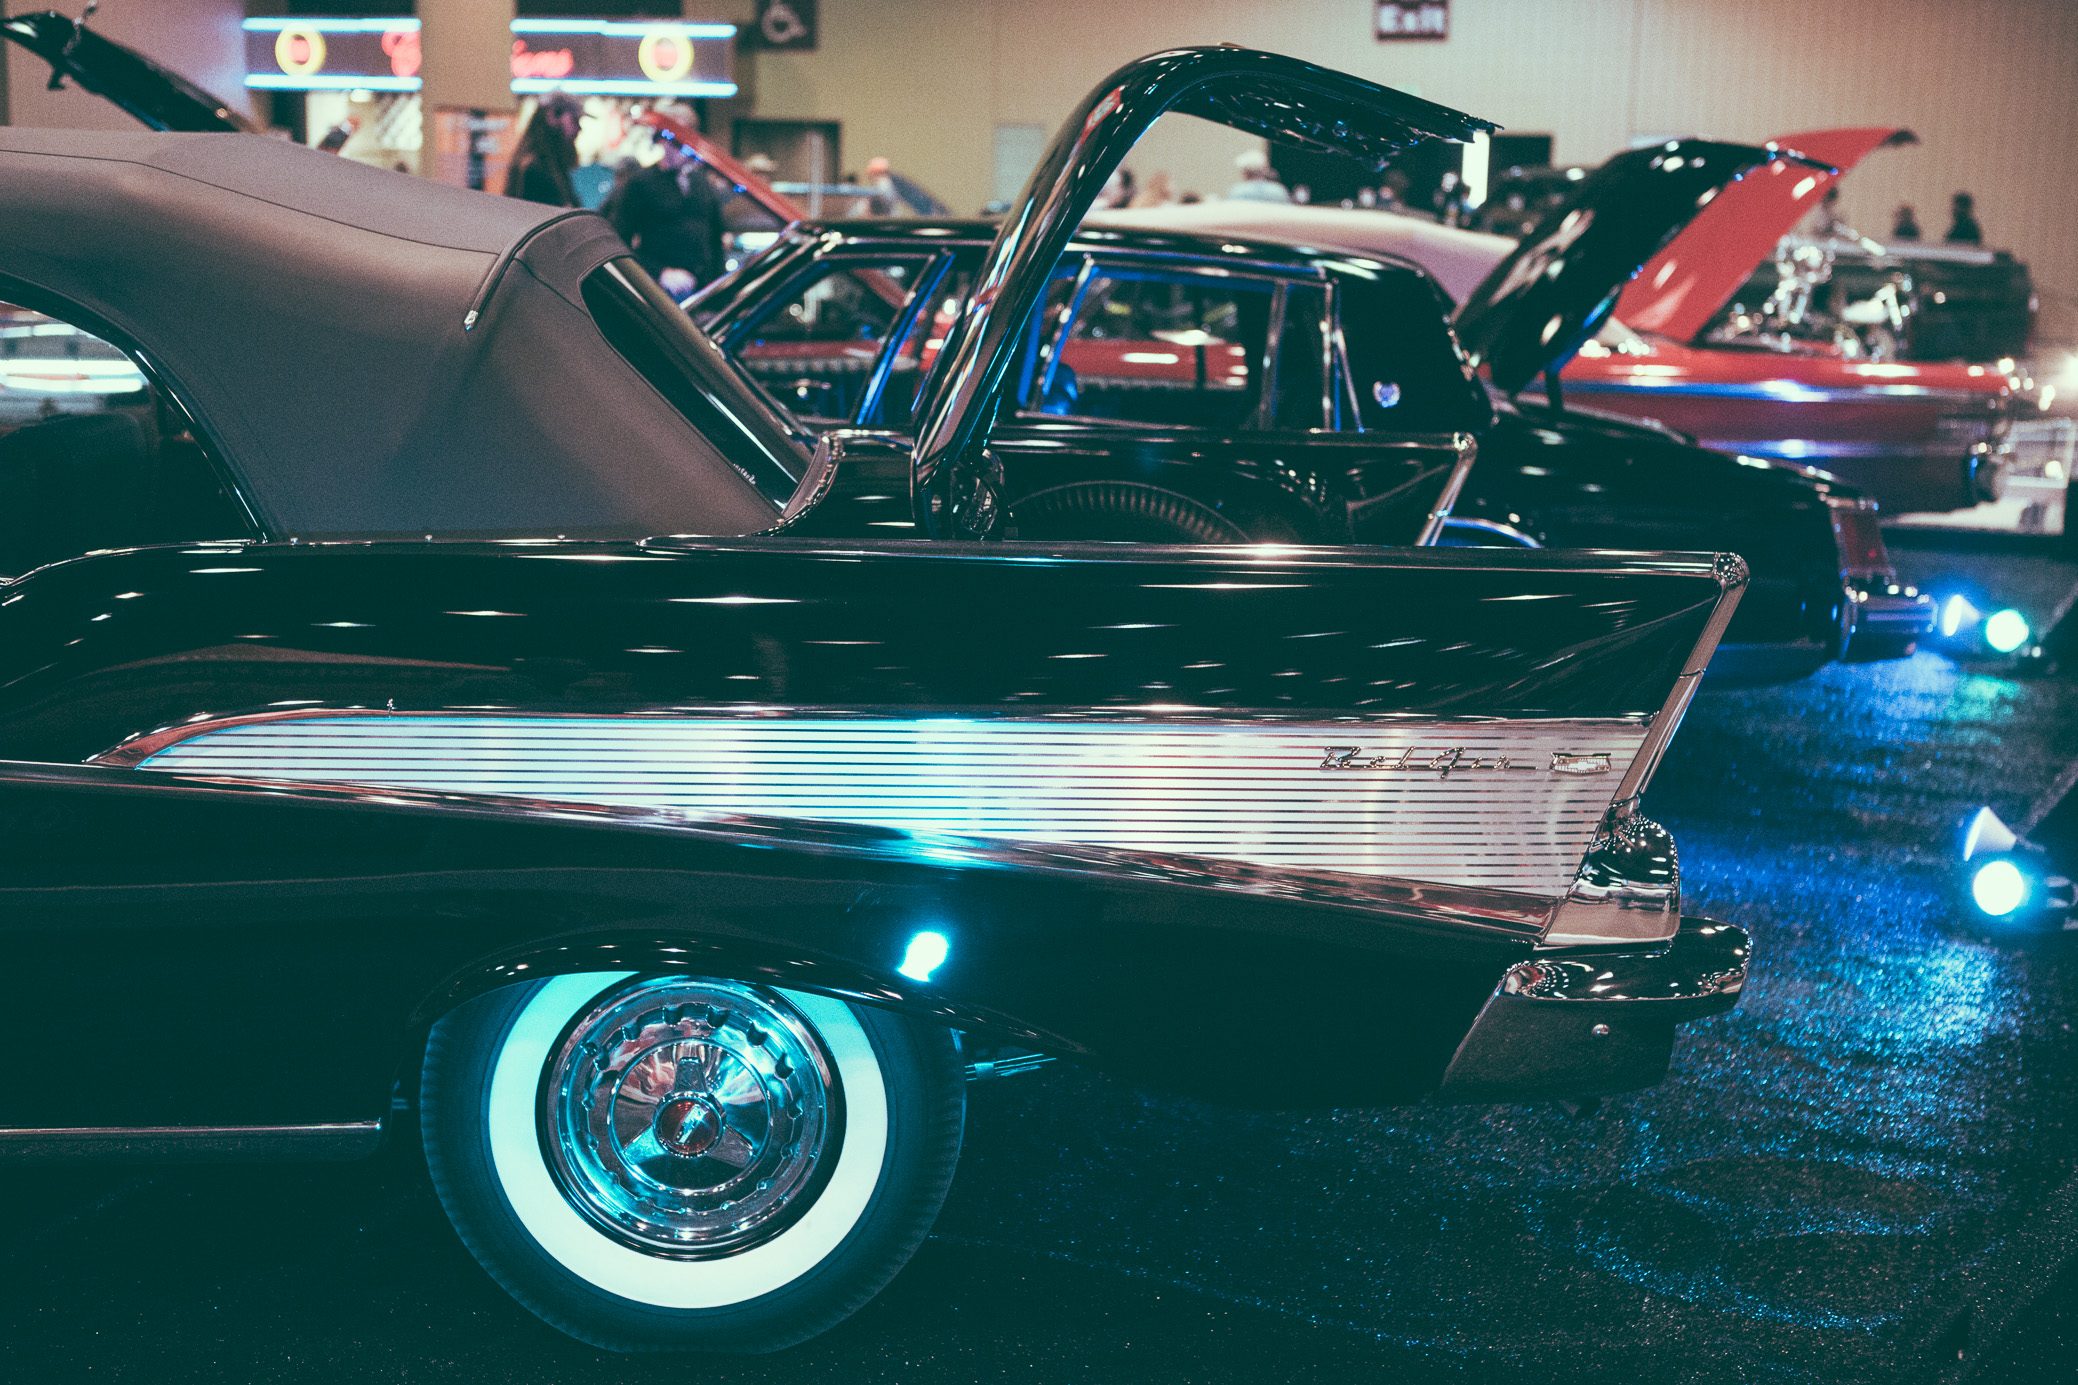 A scene from the World of Wheels at the Birmingham-Jefferson Civic Center in Birmingham, Alabama on February 11th, 2018. (Photo by David A. Smith/DSmithScenes)